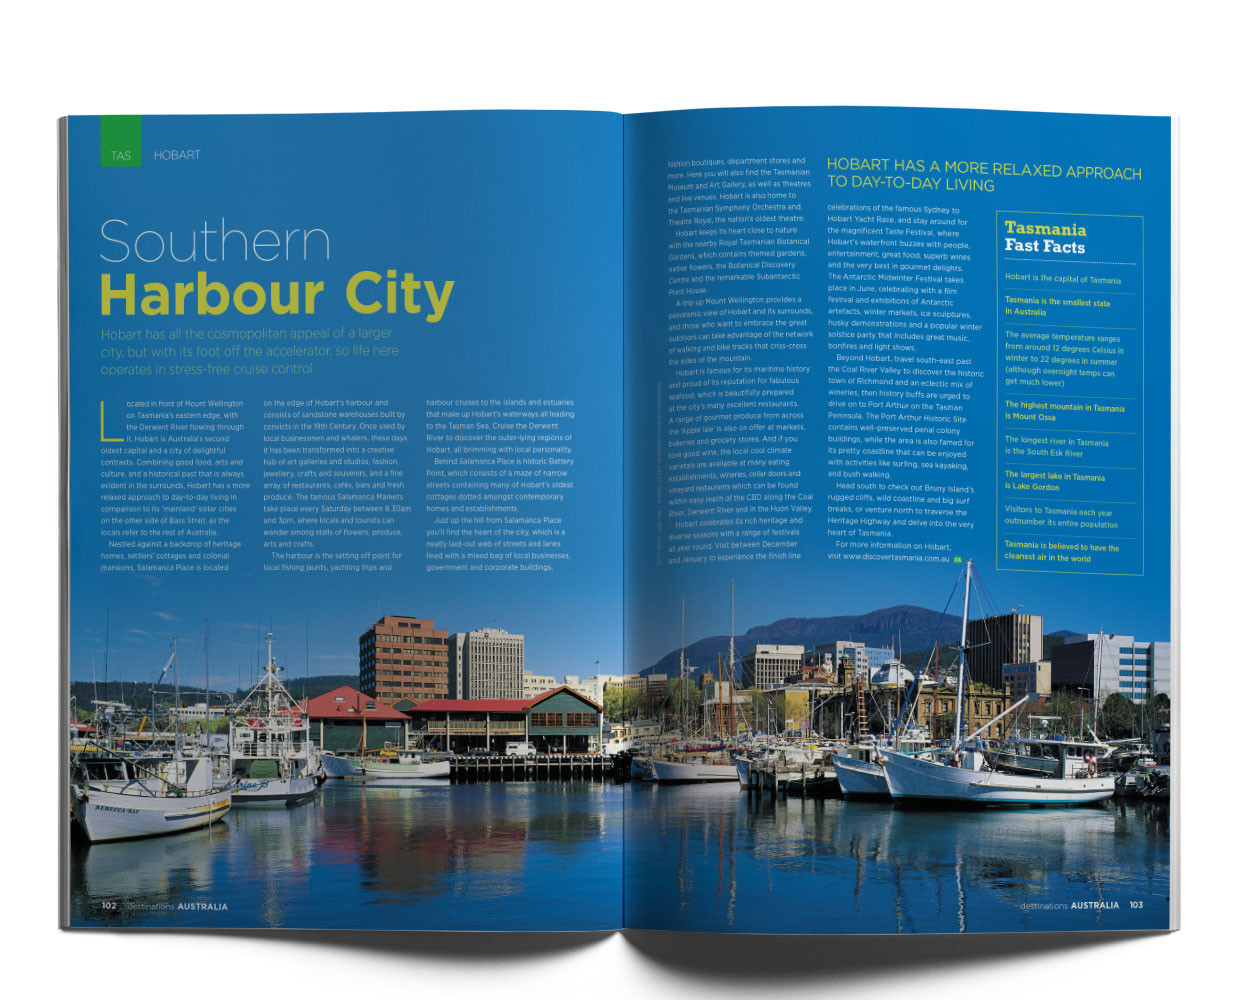 Hobart, Tasmania opener for the Destinations tourism magazine.